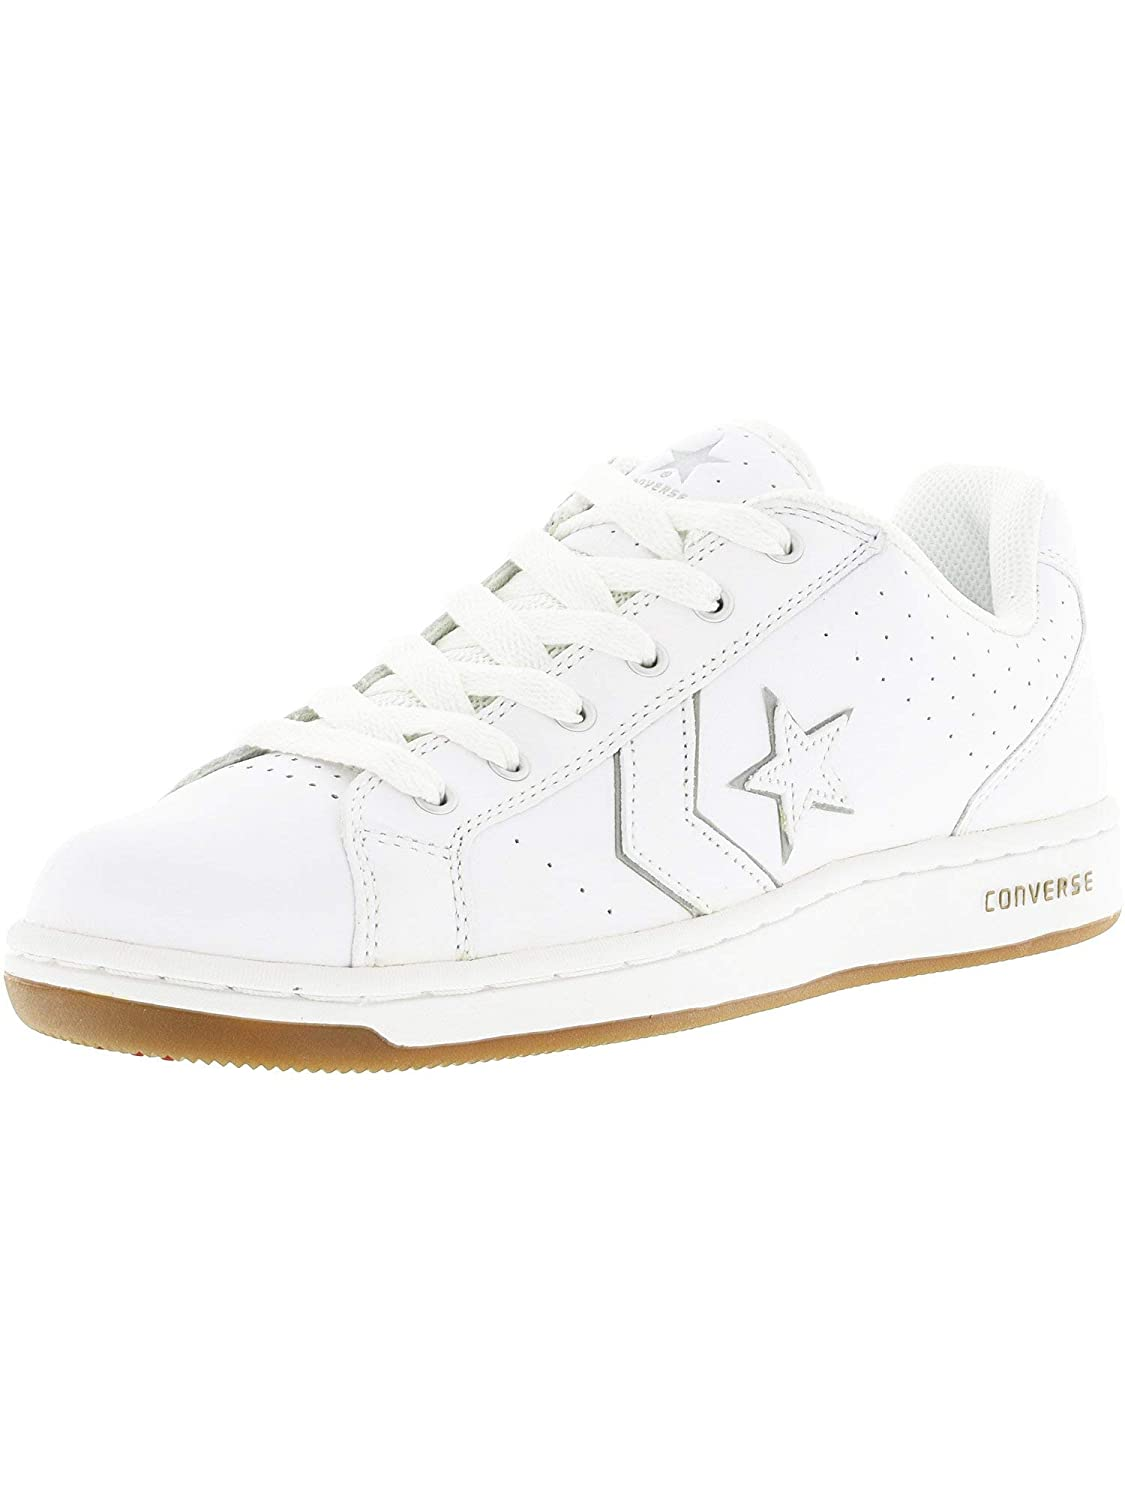 6931279df622 Amazon.com  Converse Karve Ox Ankle-High Fashion Sneaker  Converse  Shoes